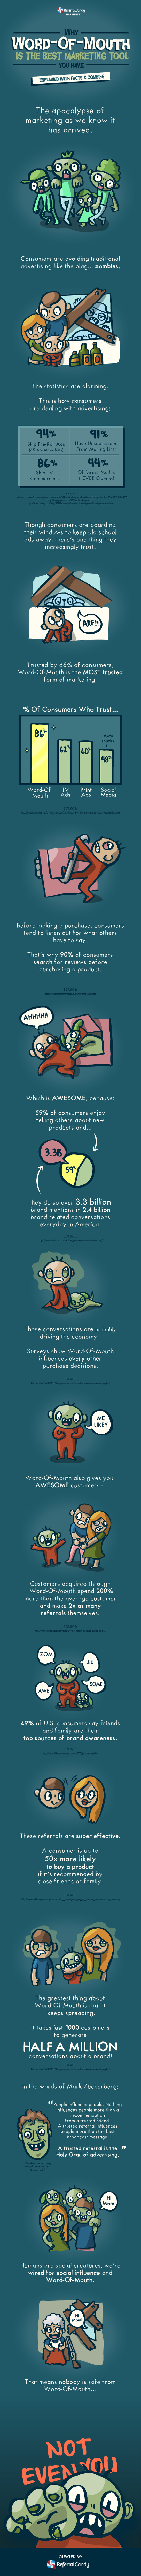 Why Word-Of-Mouth Is The Best Marketing Tool You Have